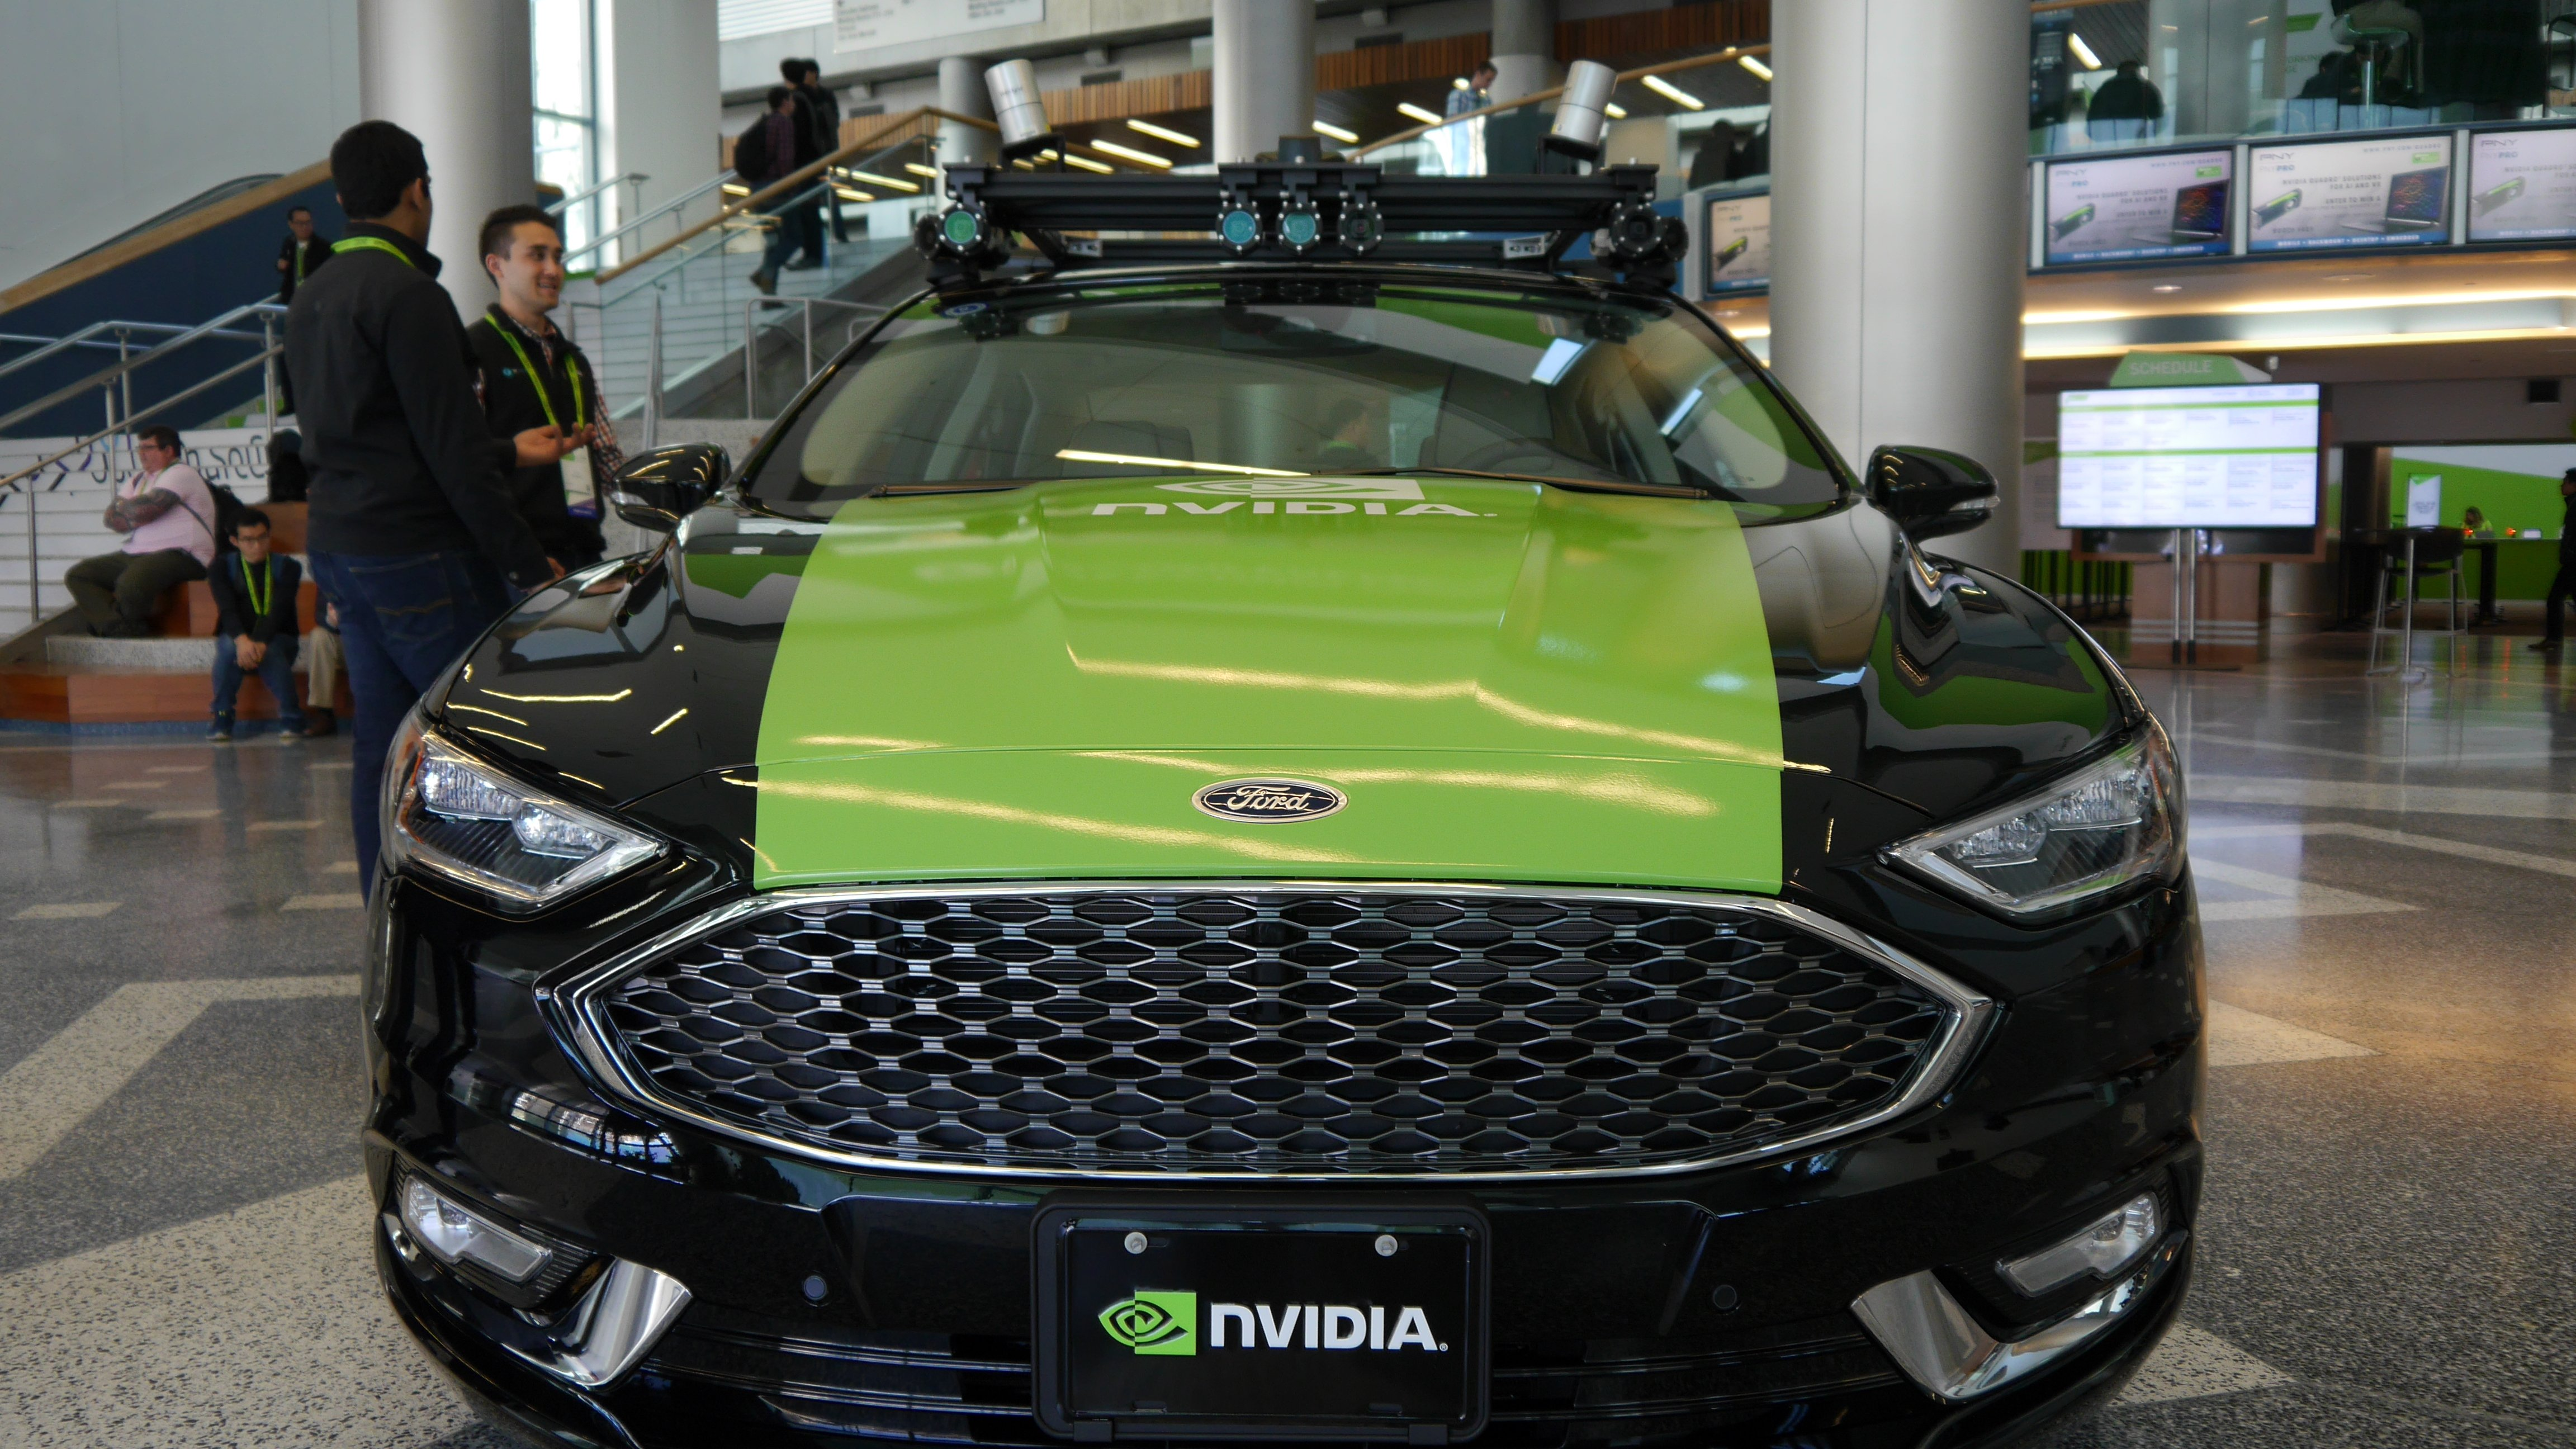 Nvidia simulates self-driving cars in the data center - DCD